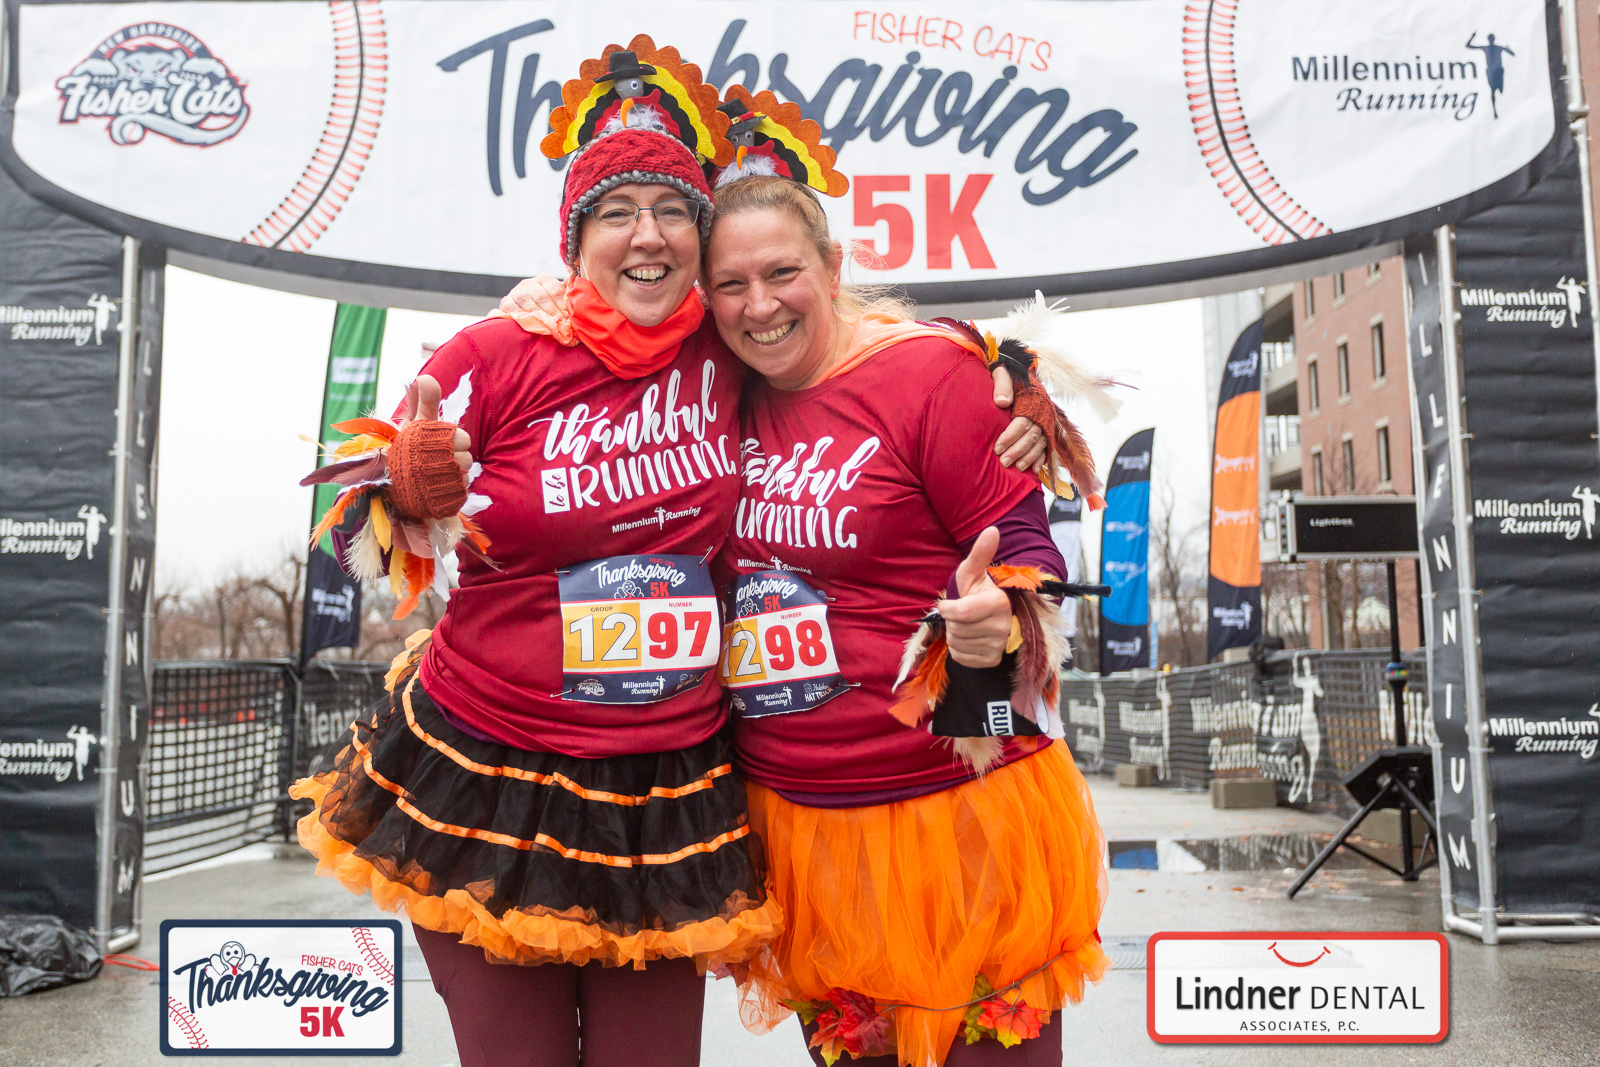 PHOTOS: NH Fisher Cats Thanksgiving 5k – 2020